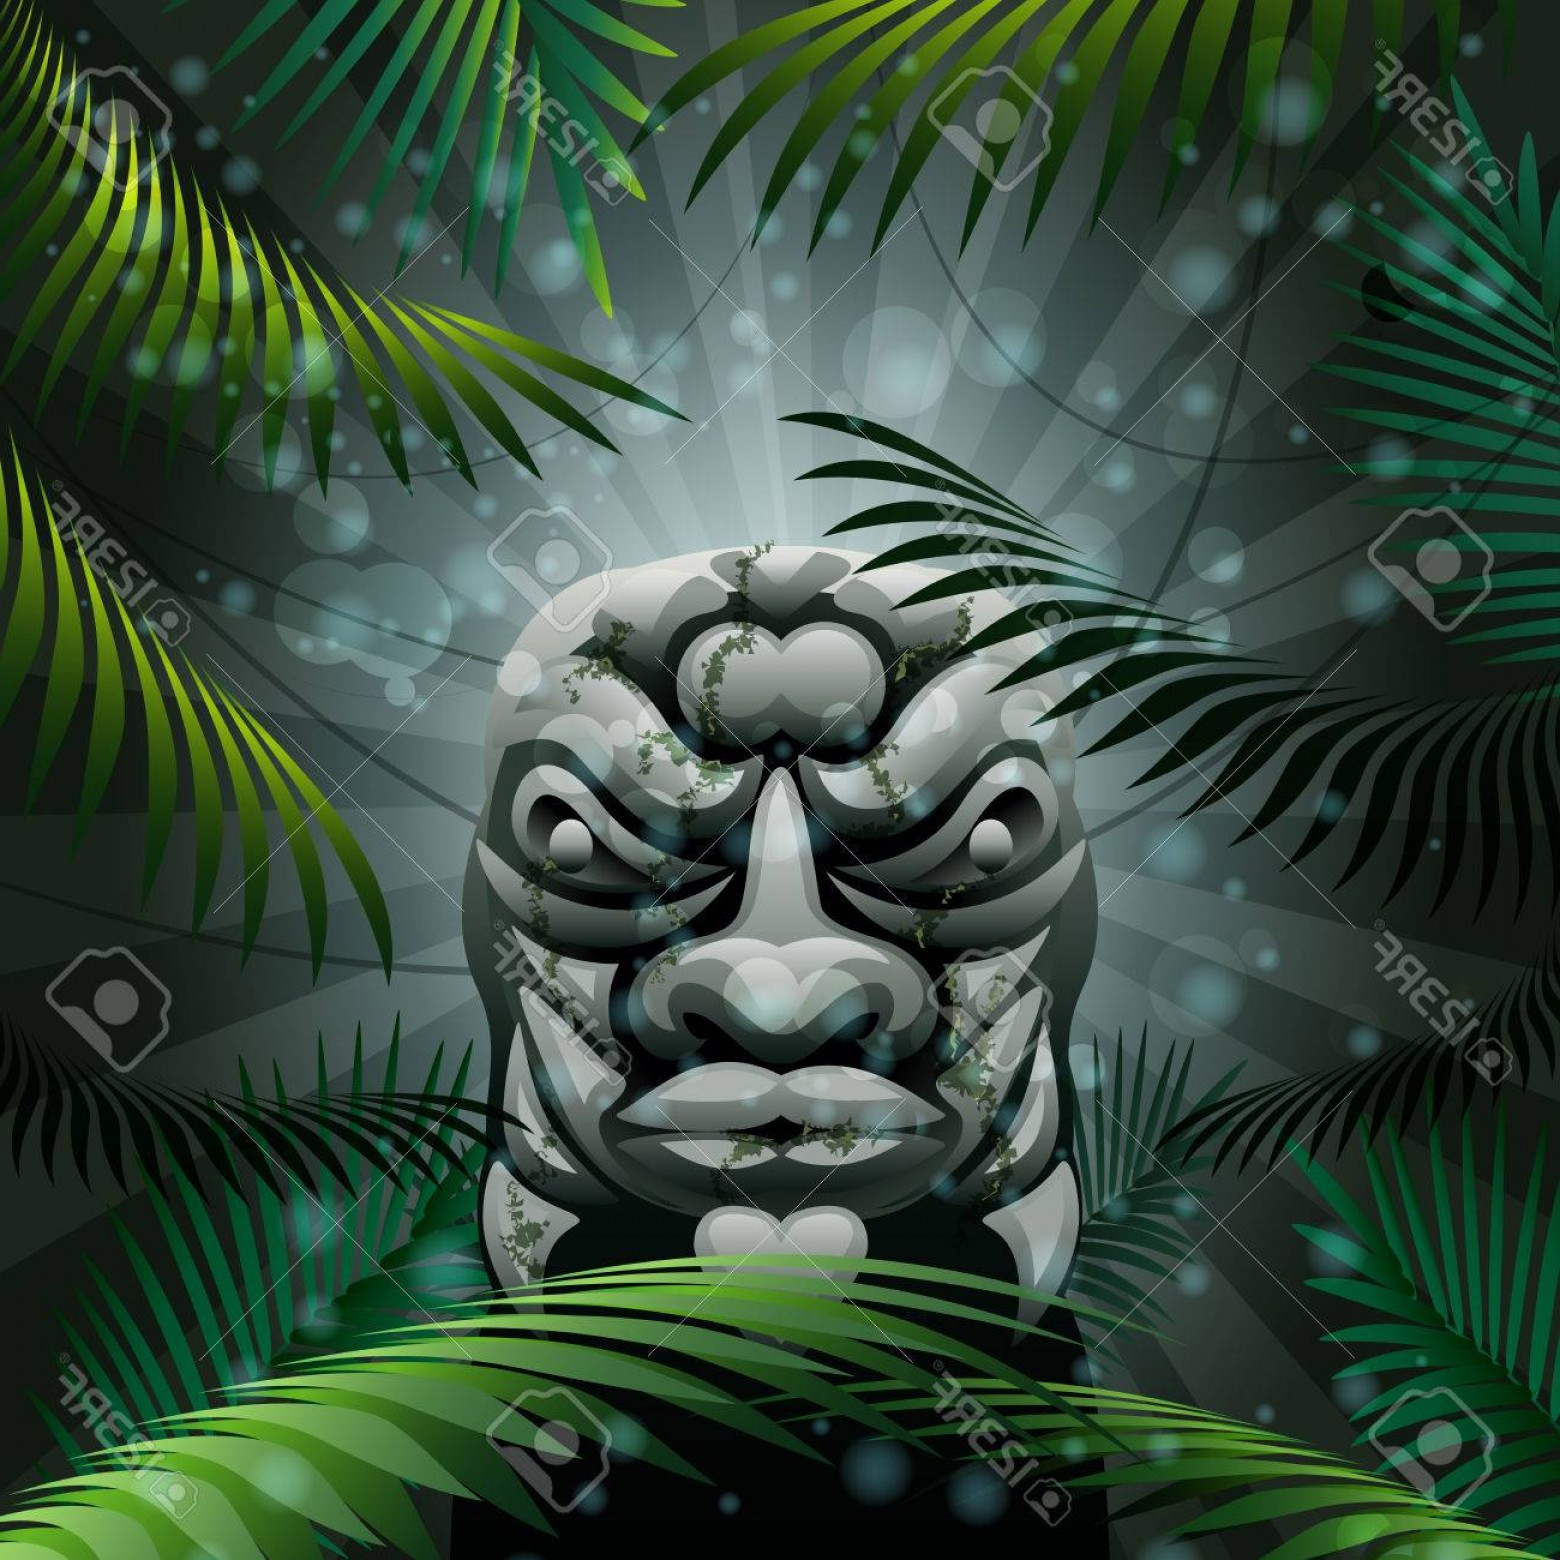 Ancient Jungle Statue Vector Images: Photoillustration With Ancient Stone Idol Hidden Deep In A Jungle Forest